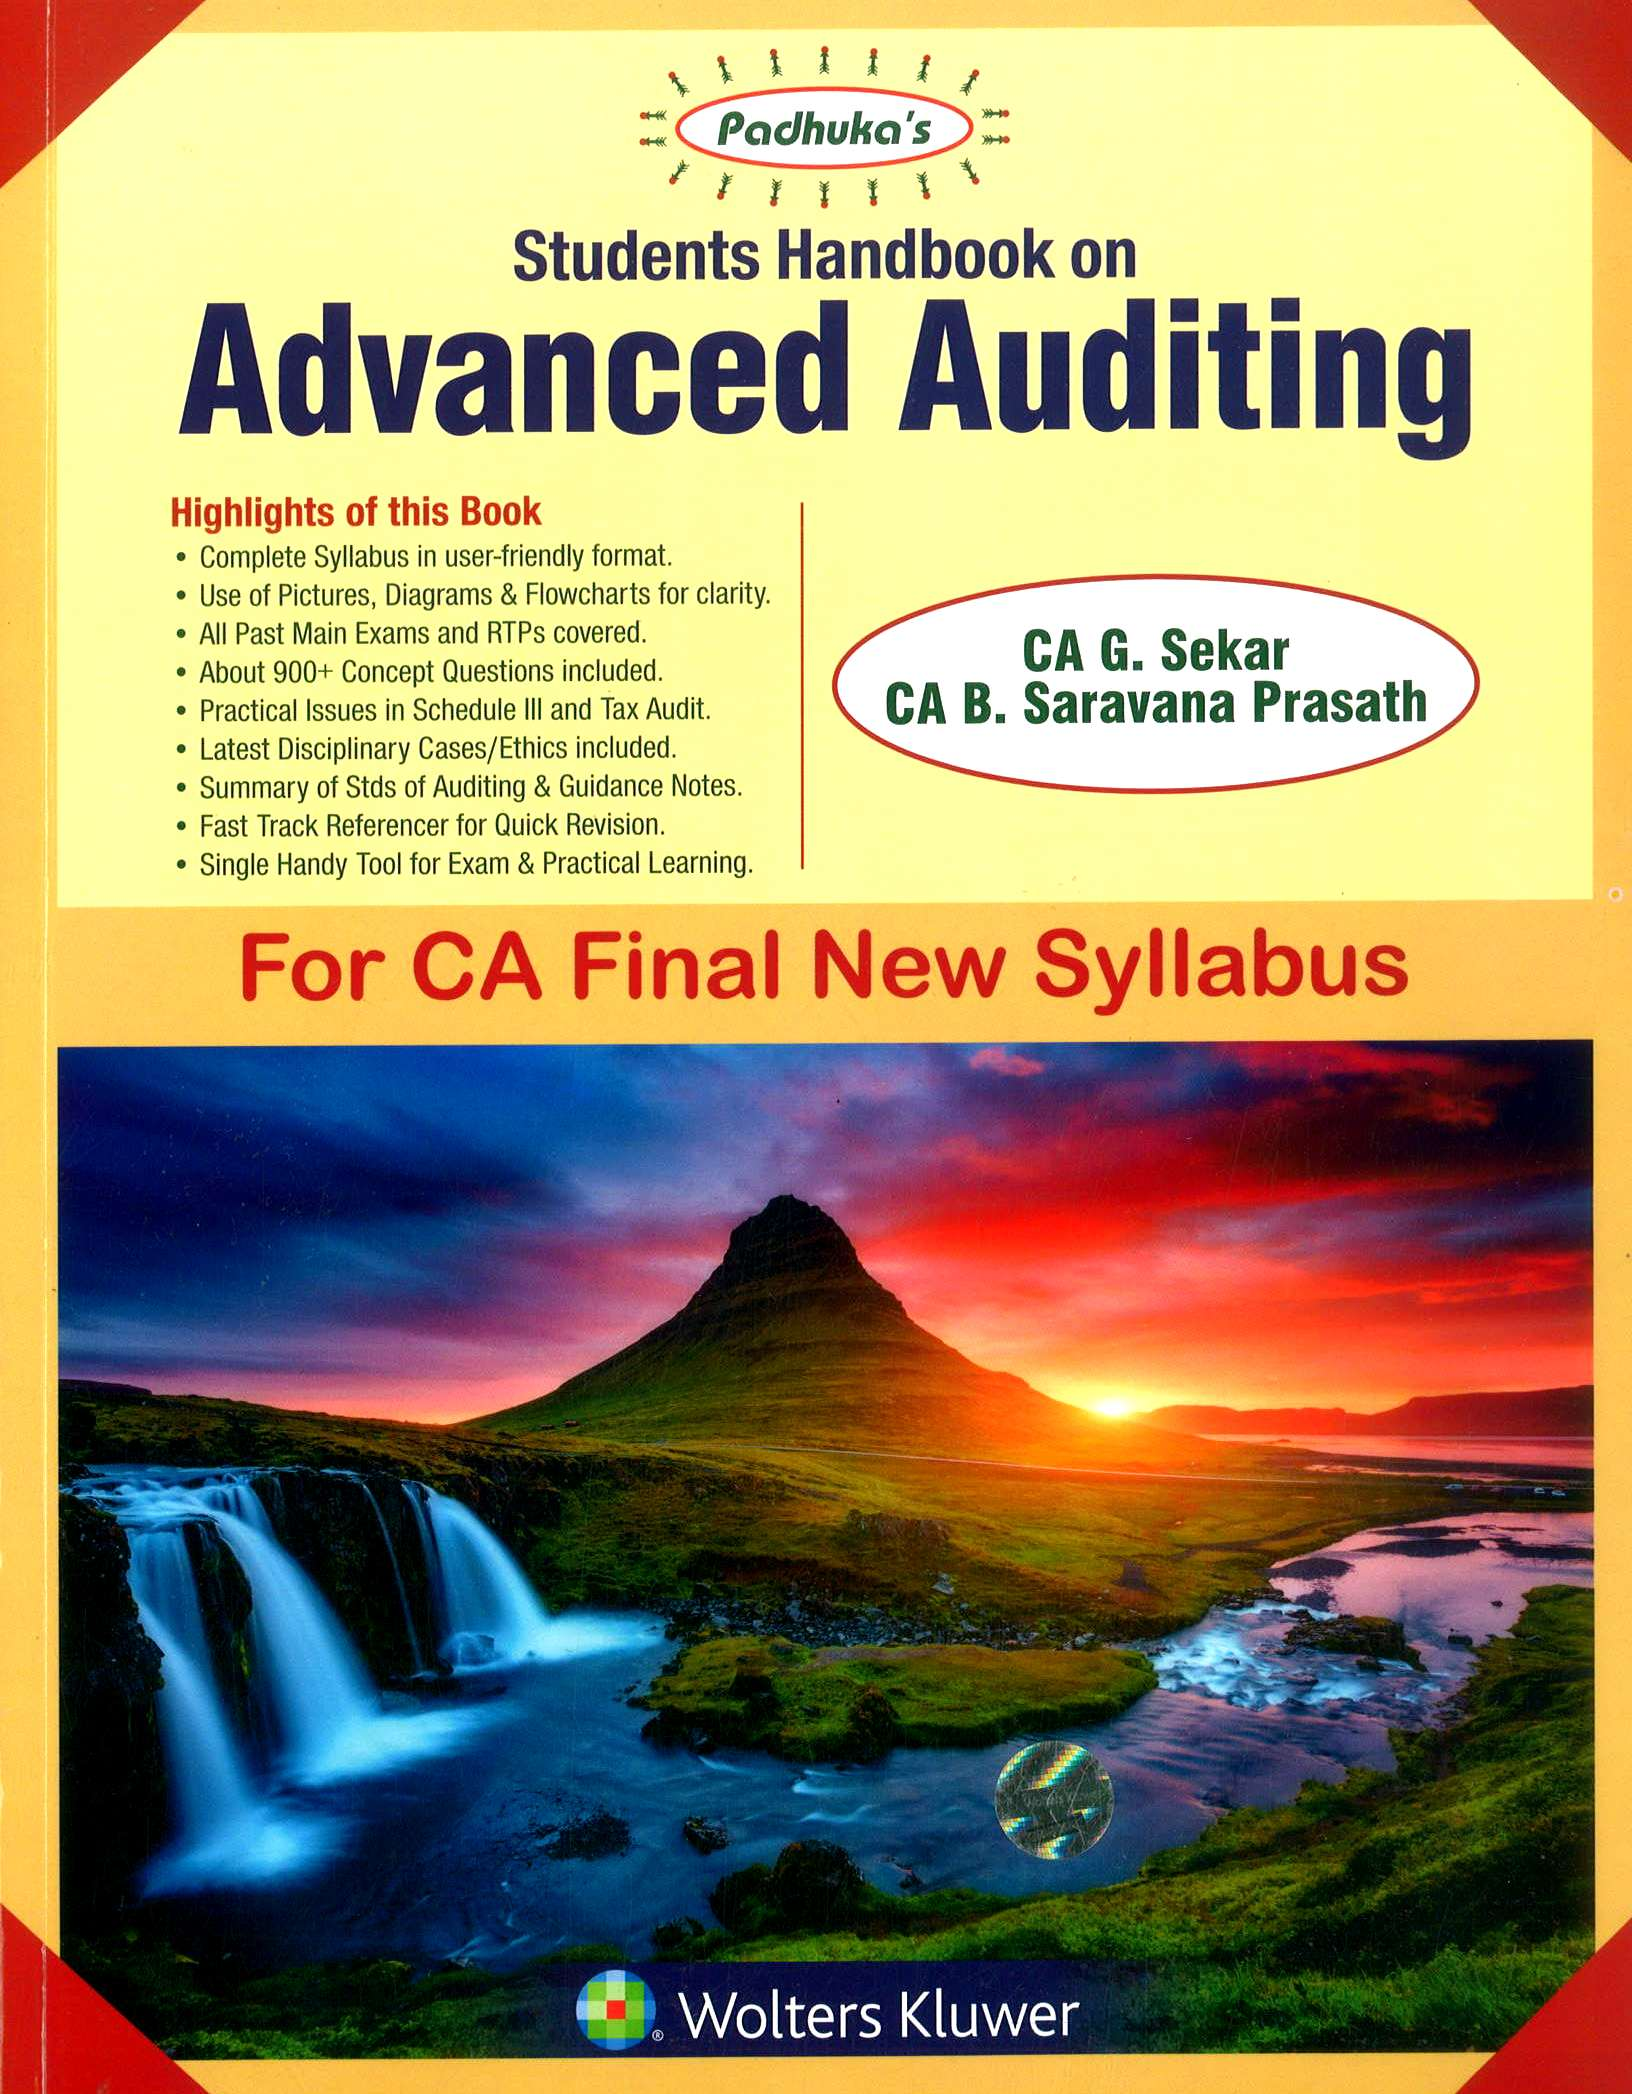 Padhuka's Student Handbook on Advanced Auditing CA Final (New Syllabus) for Nov 2018 exam by CA G. Sekar and CA B. Saravana Prasath (Wolters Kluwer Publishing) Edition 2018